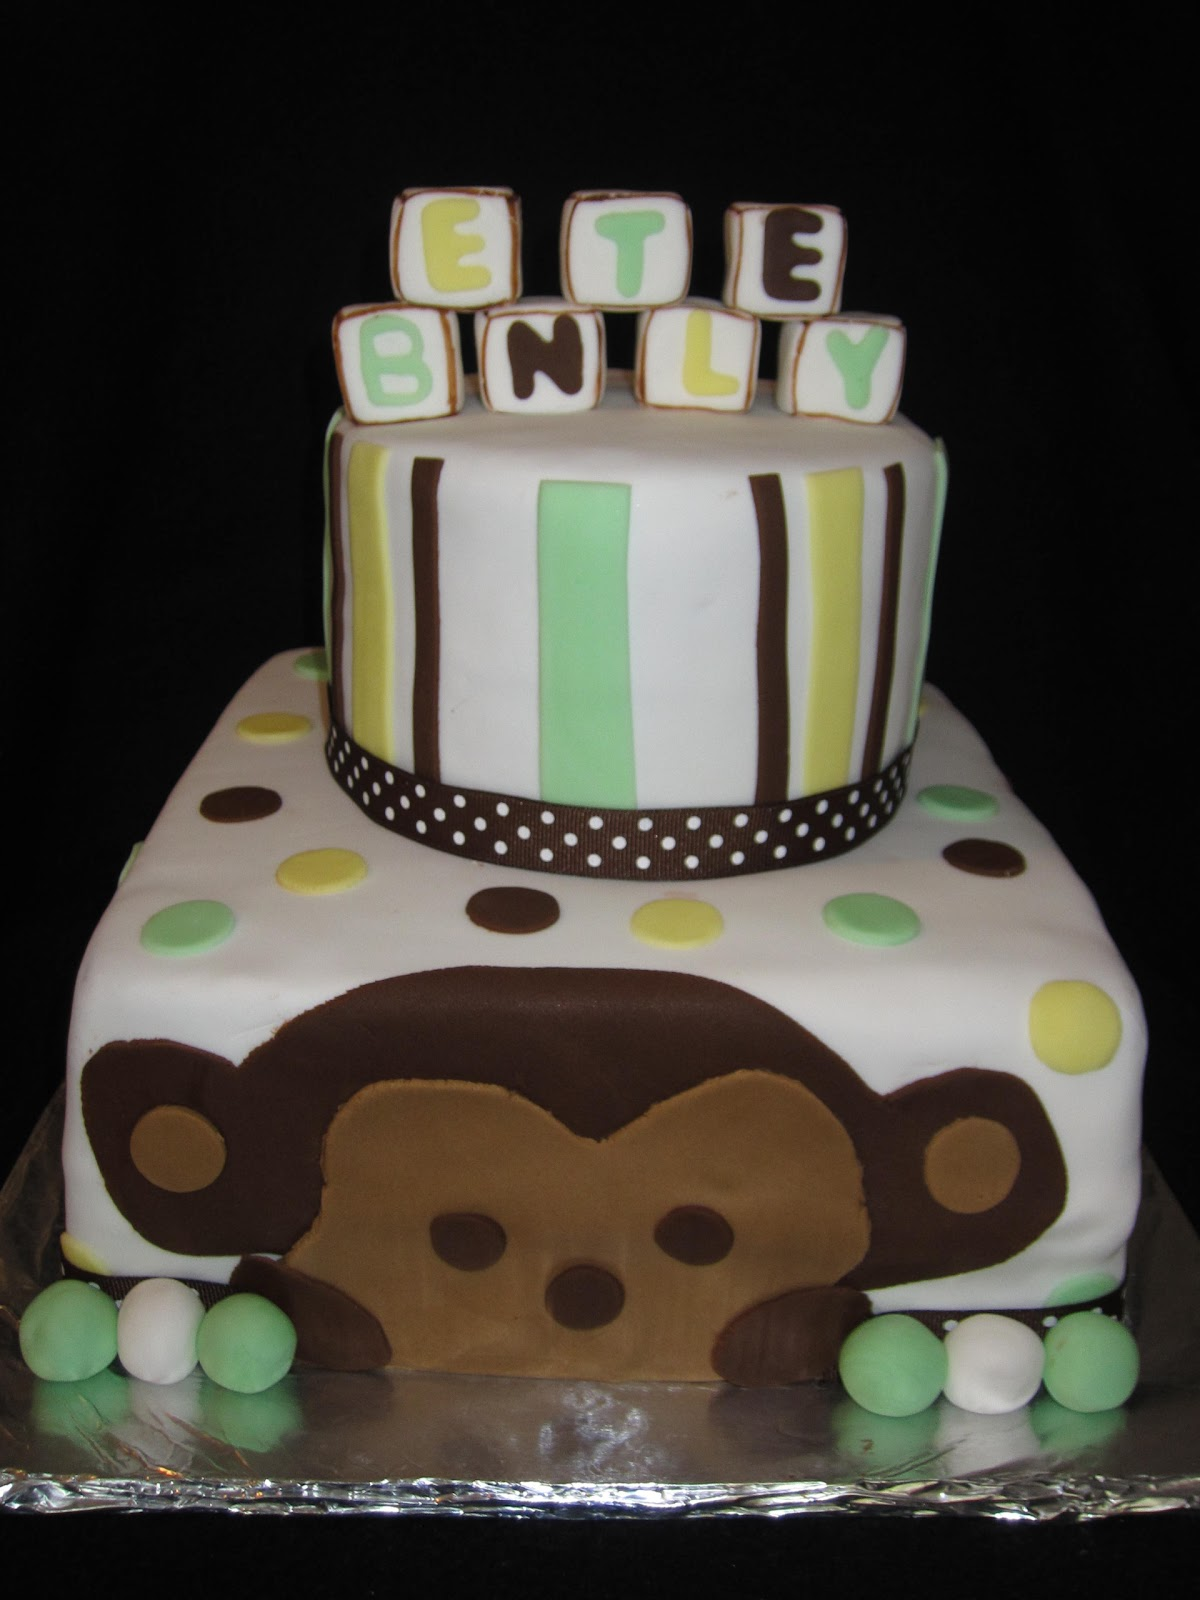 Sabtabulous cakes monkey baby shower cake - Baby shower monkey theme cakes ...